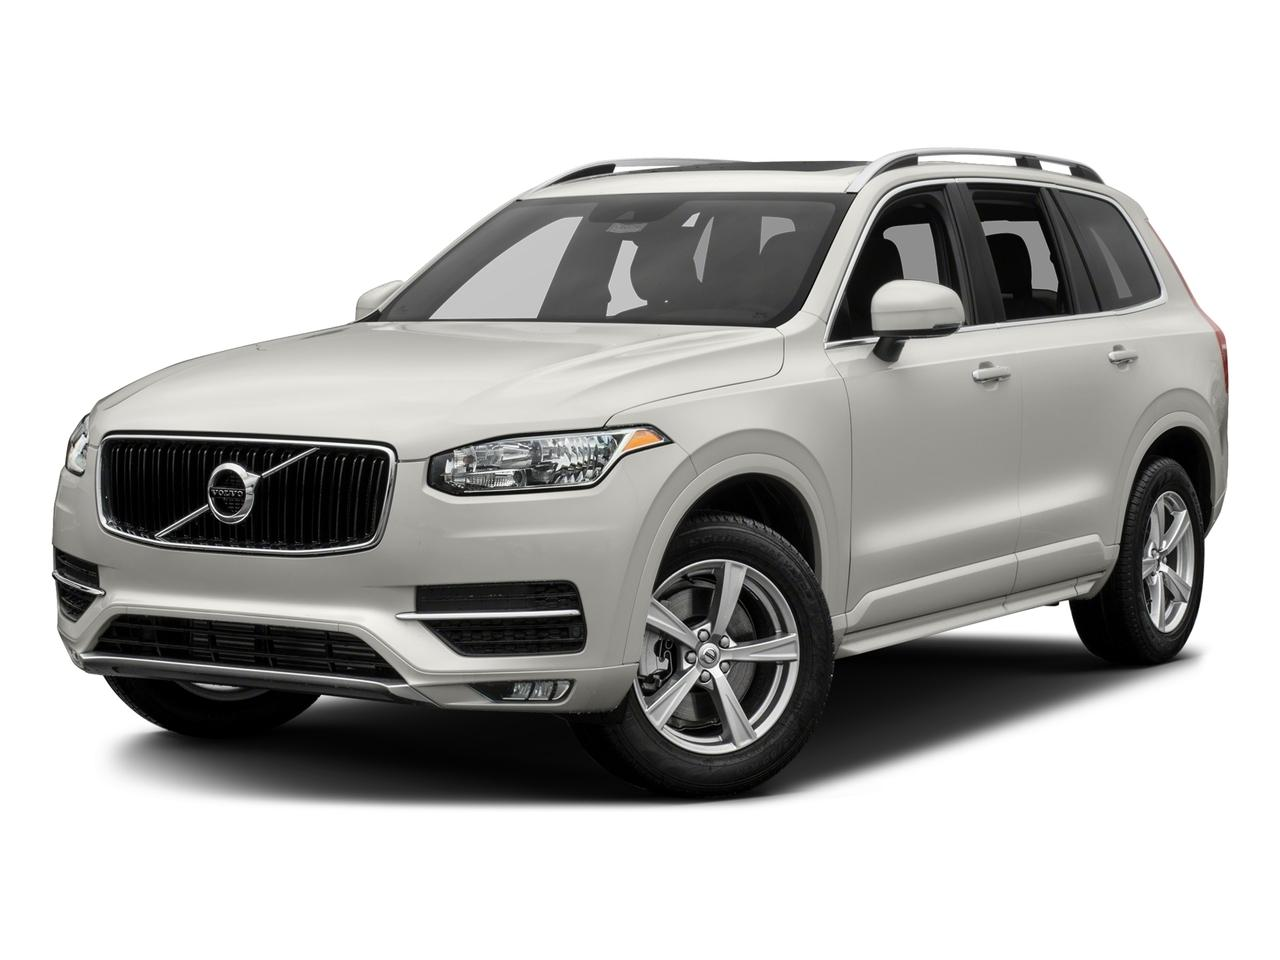 2017 Volvo XC90 Vehicle Photo in Grapevine, TX 76051